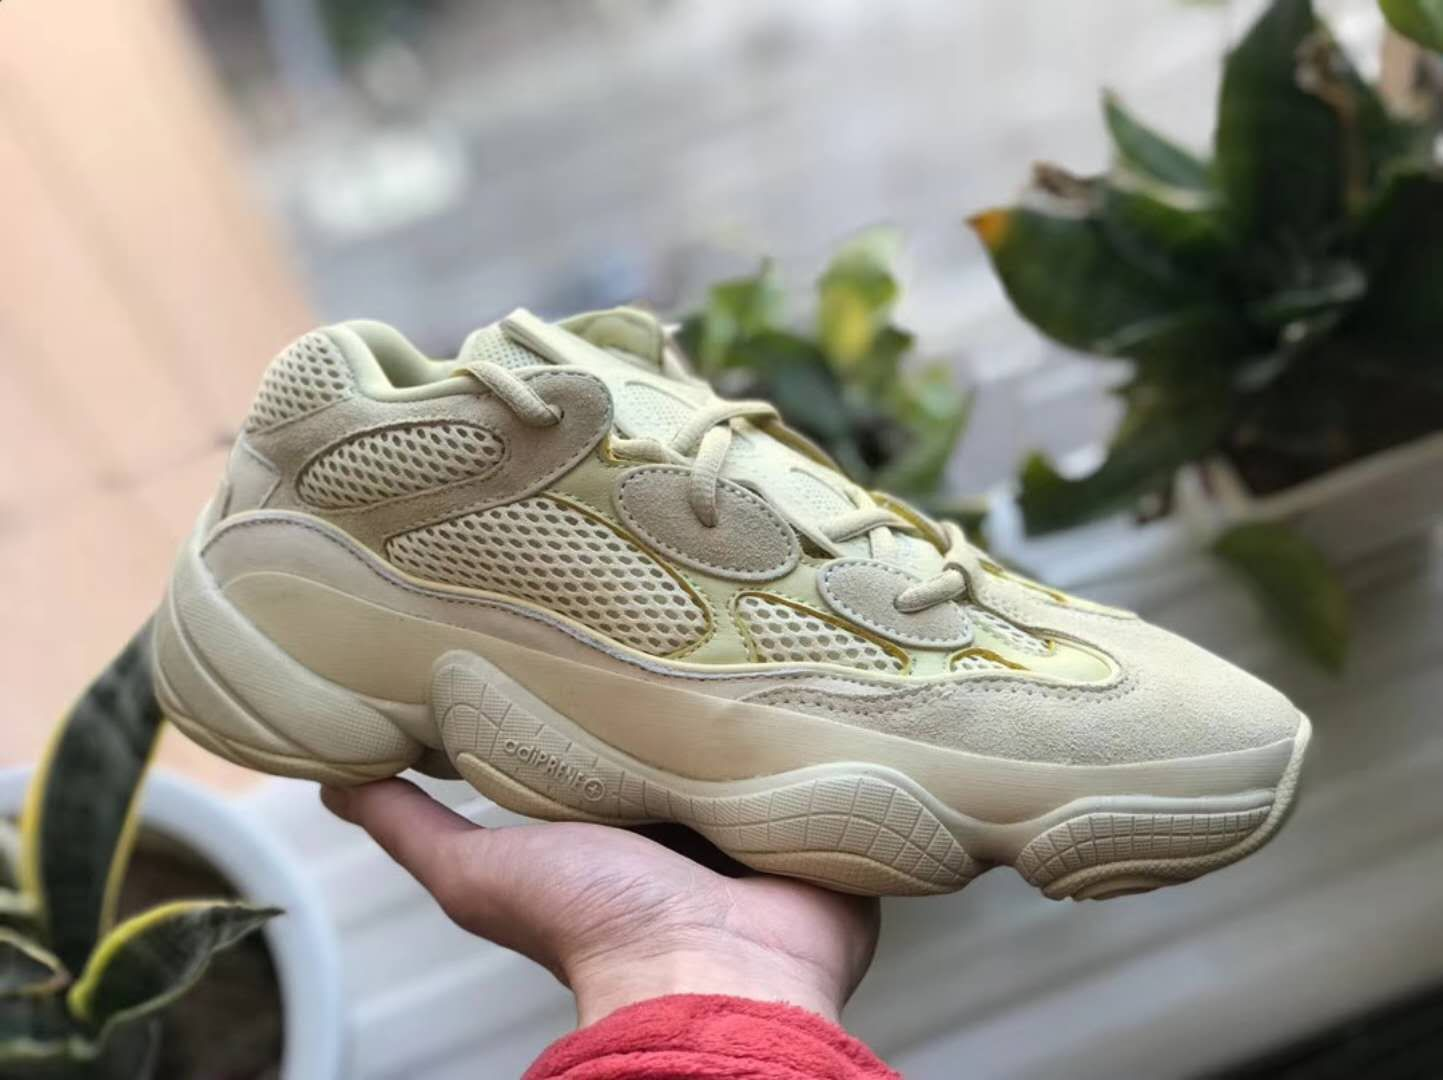 87ec0eab2 Yeezy Desert Rat 500 SUPER MOON YELLOW